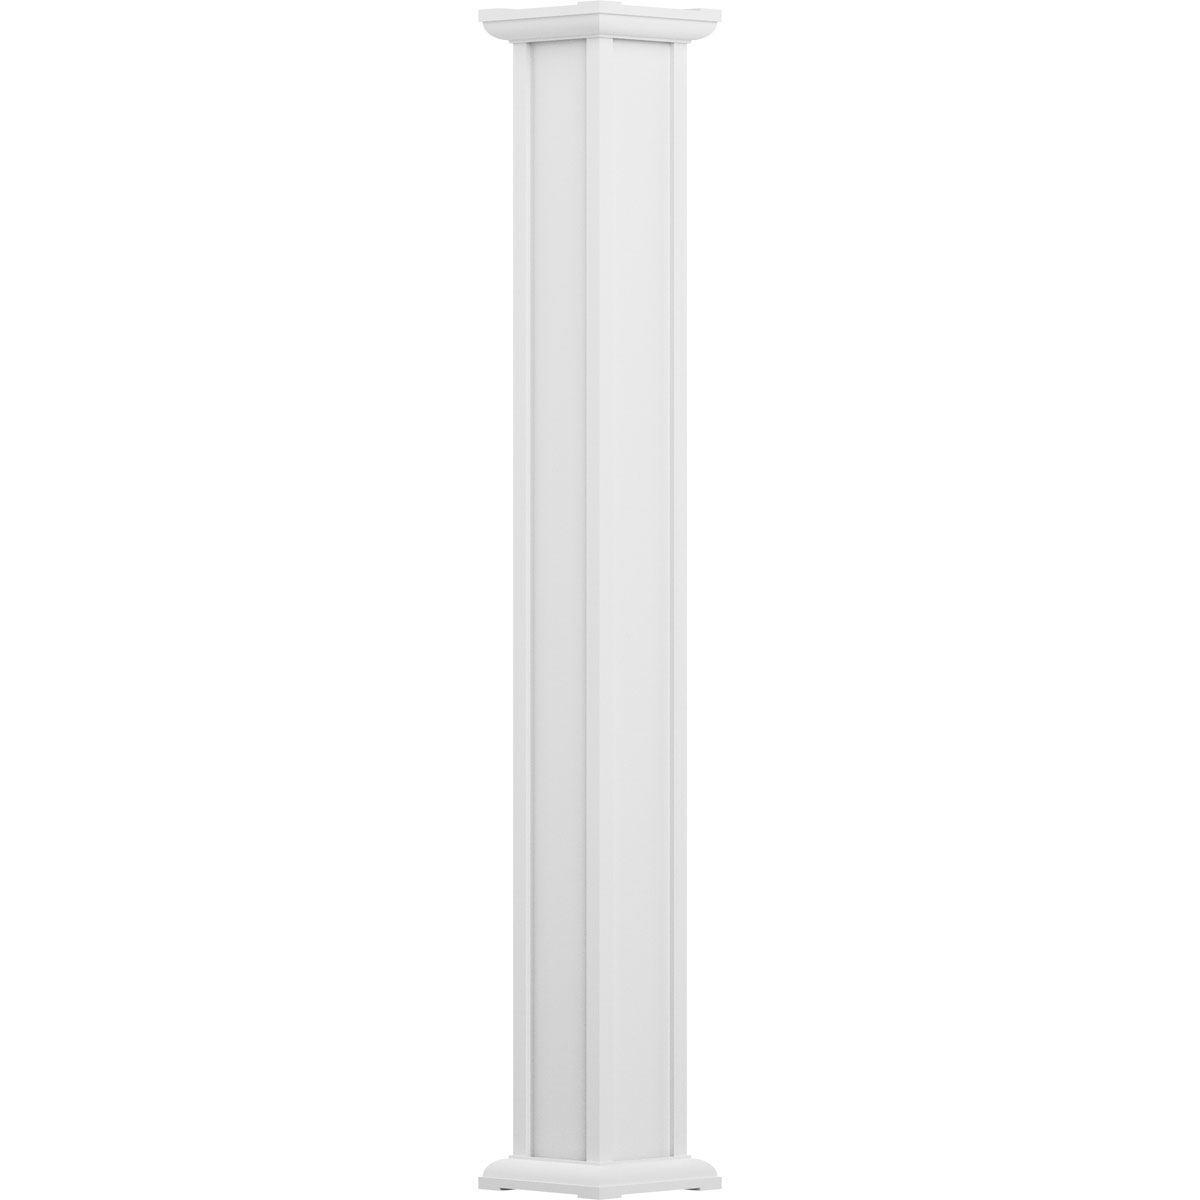 Afco industries ea0608inpspacac 6 inch x 8 39 endura aluminu for Permacast columns pricing